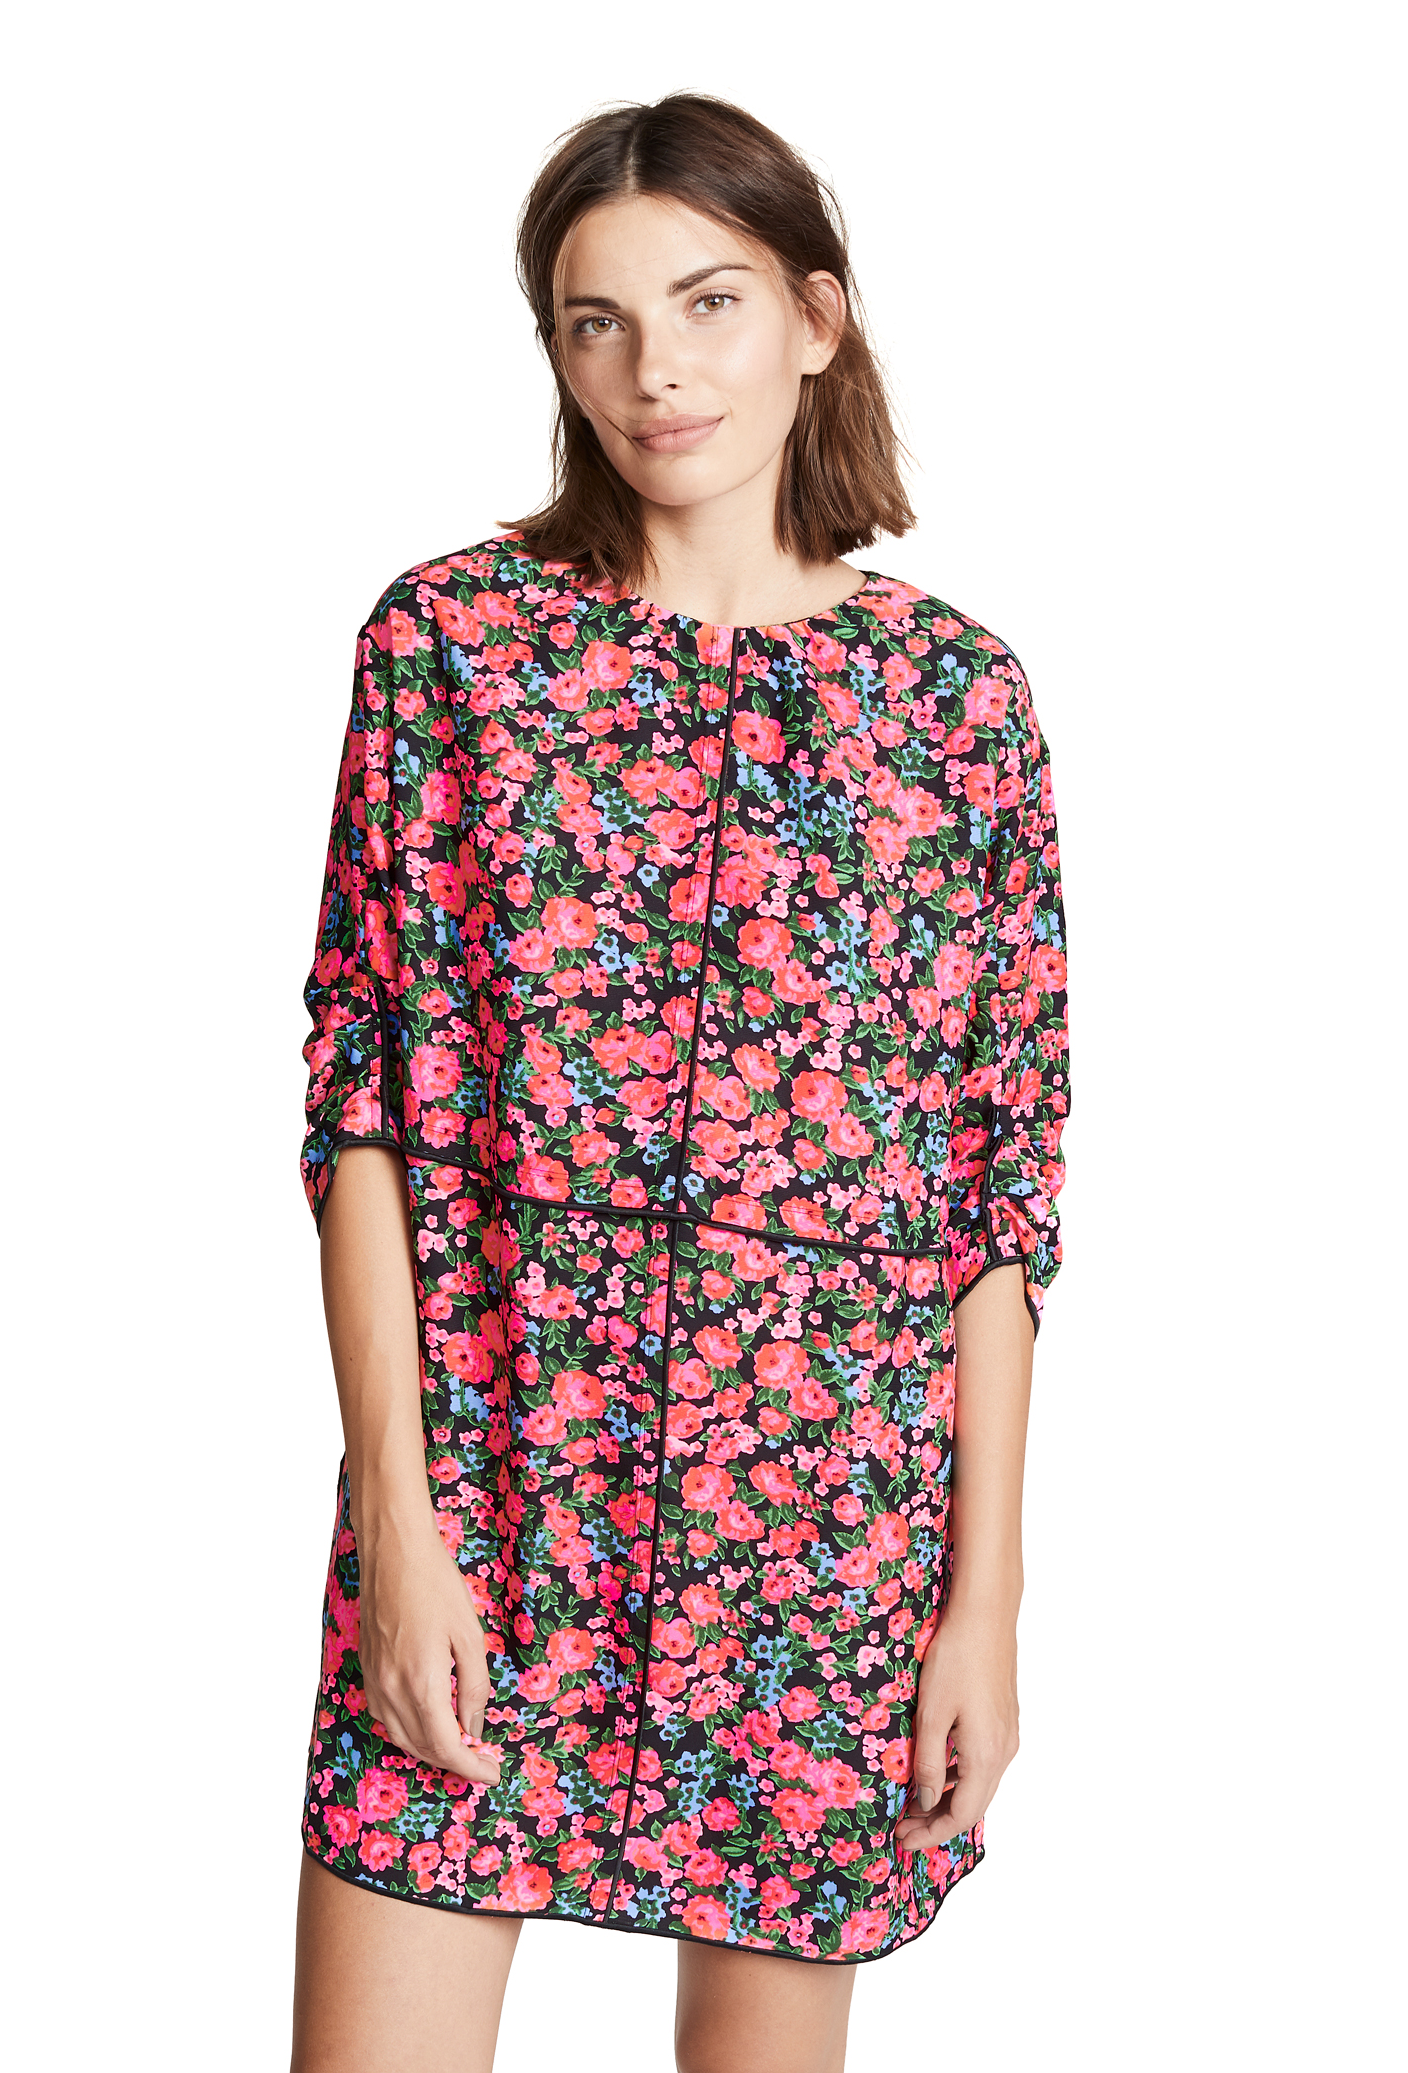 2-marc-jacobs-floral-dress.png